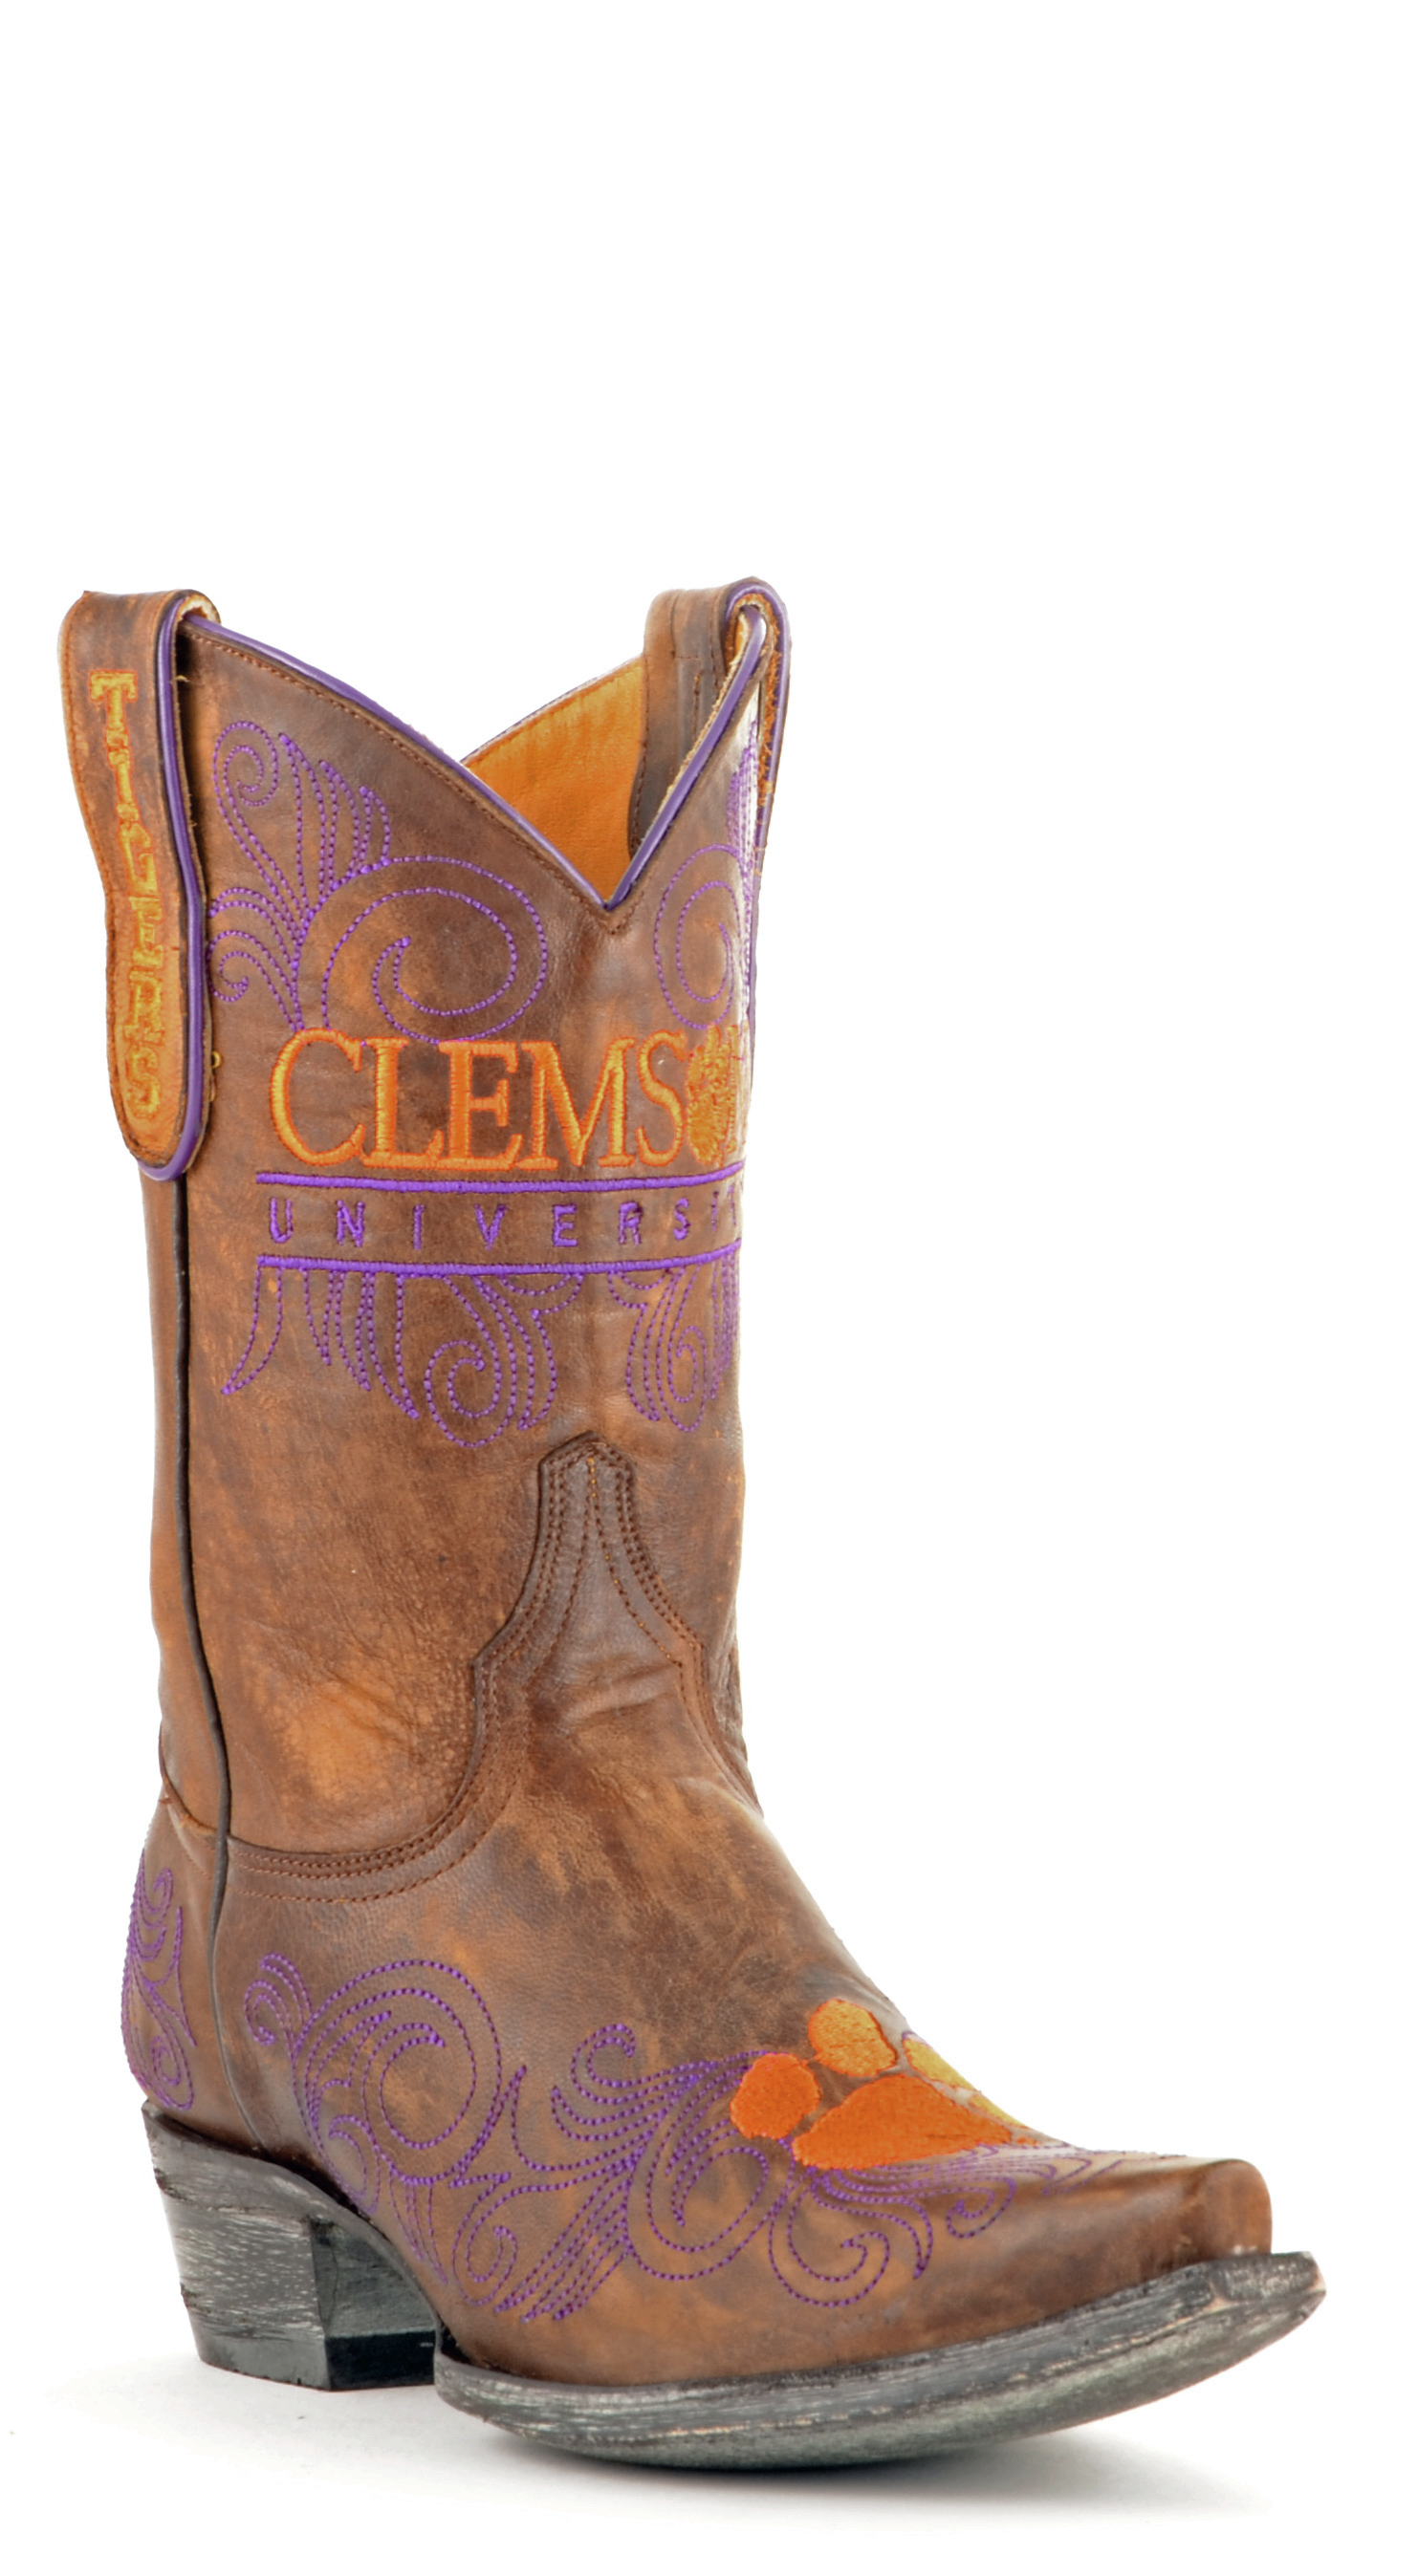 "Gameday Boots Women's 10"" Short Leather Clemson Cowboy Boots 3557 New by GameDay Boots"